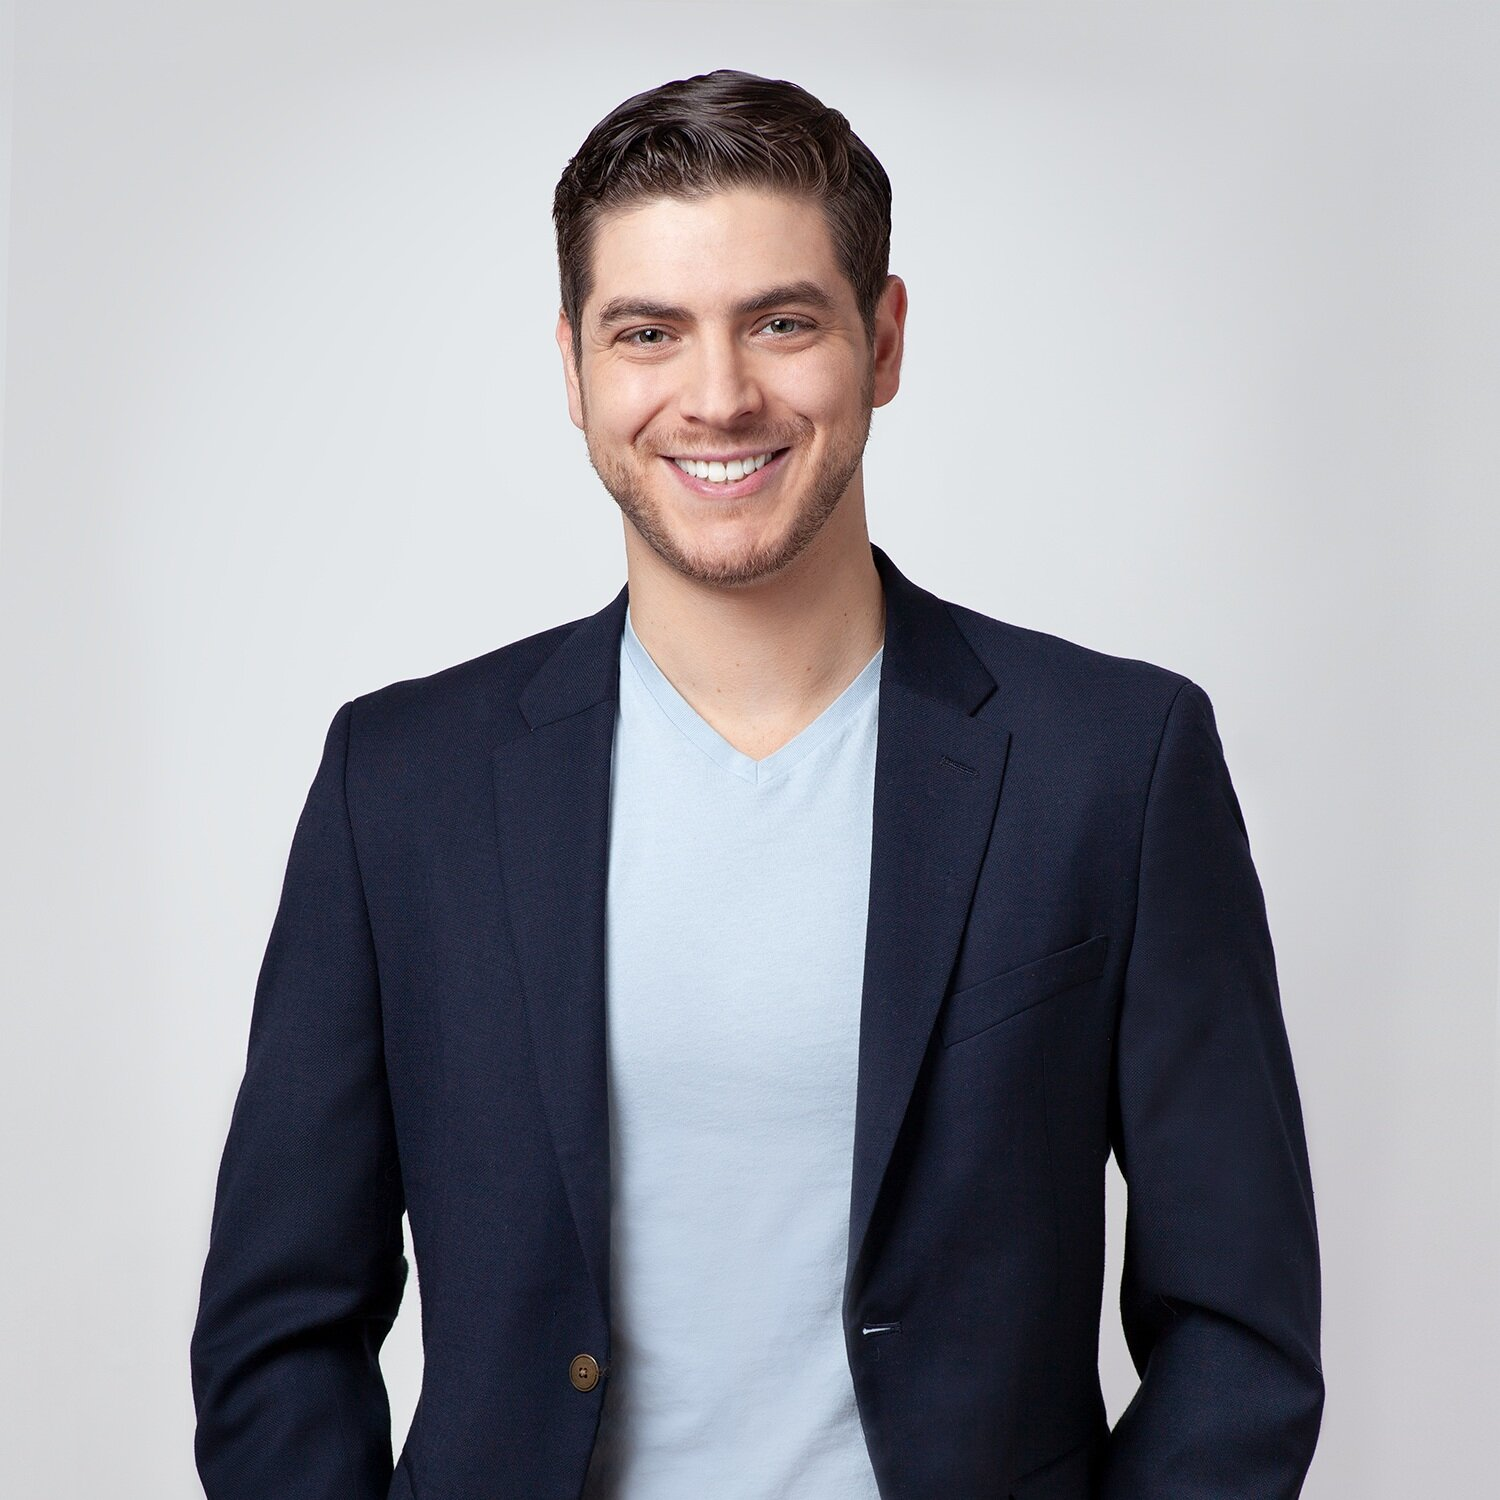 Harris is an associate at ESG Law, the worlds first dedicated esports law firm. At ESG, Harris represents preeminent esports teams, talent, and institutions. He also contributes to esports op-eds for ESPN. Prior to joining ESG, Harris practiced corporate and intellectual property law at Meltzer, Lippe, Goldstein and Breitstone. He later joined H2K Gaming, one of Europe's premier League of Legends teams, as its Chief of Operations and Associate General Counsel. Following his time with H2K, Harris began providing legal services to all aspects of the legal community.